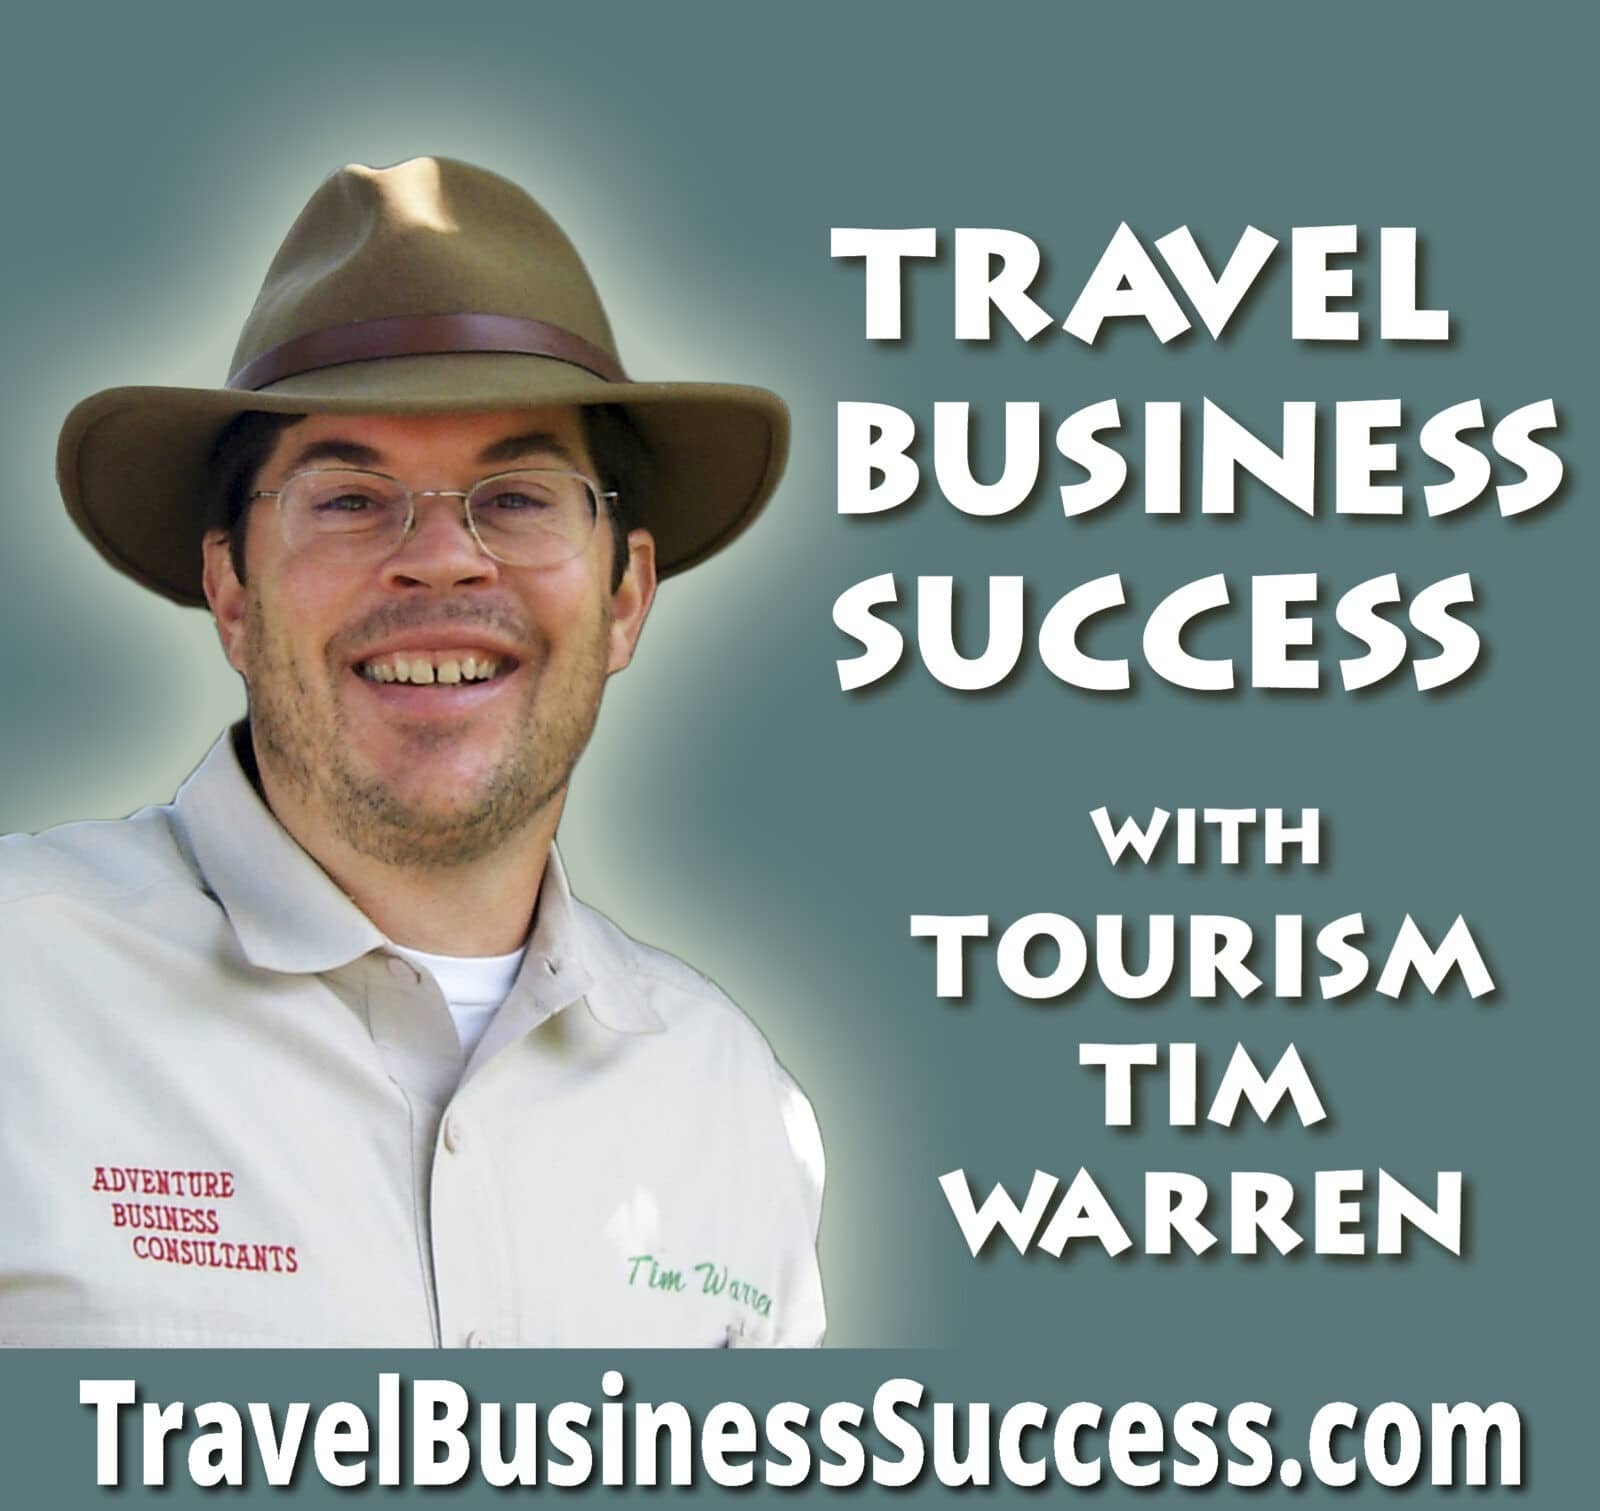 Travel Business Success | Helping Tourism Professionals Realize Their Dreams